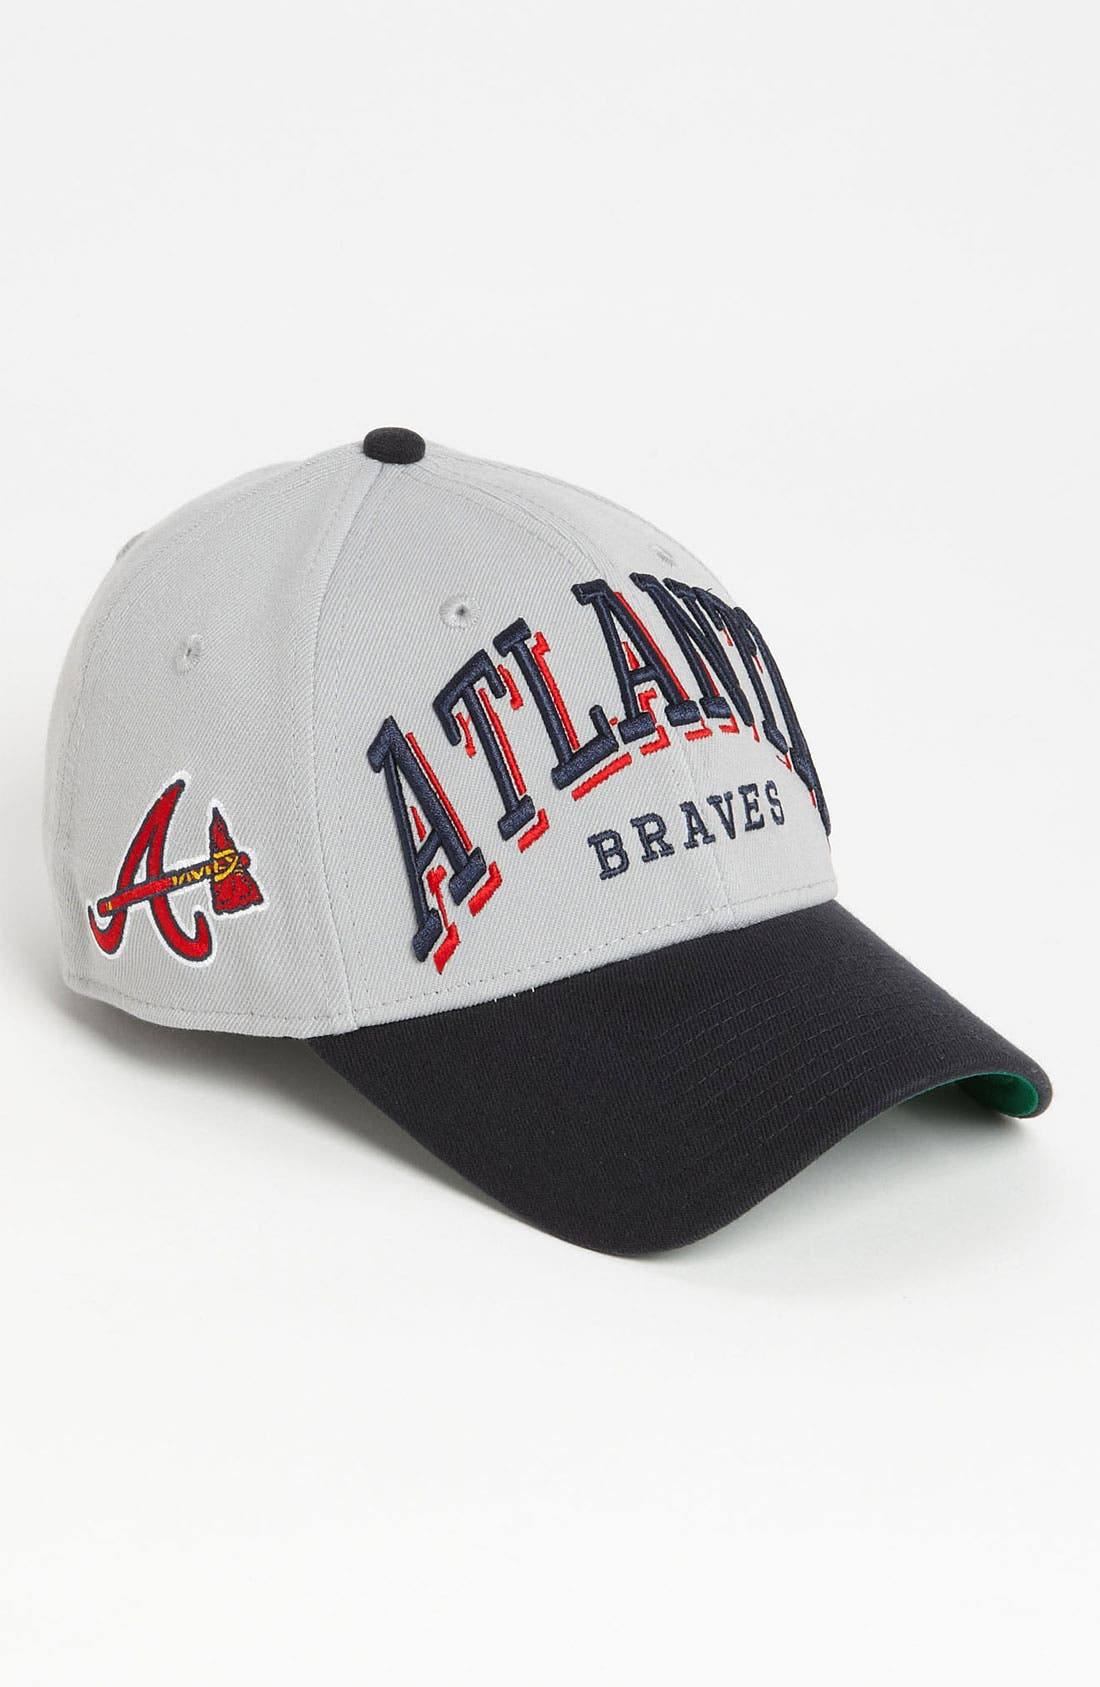 Alternate Image 2  - New Era Cap 'Atlanta Braves - Arch Mark' Fitted Baseball Cap